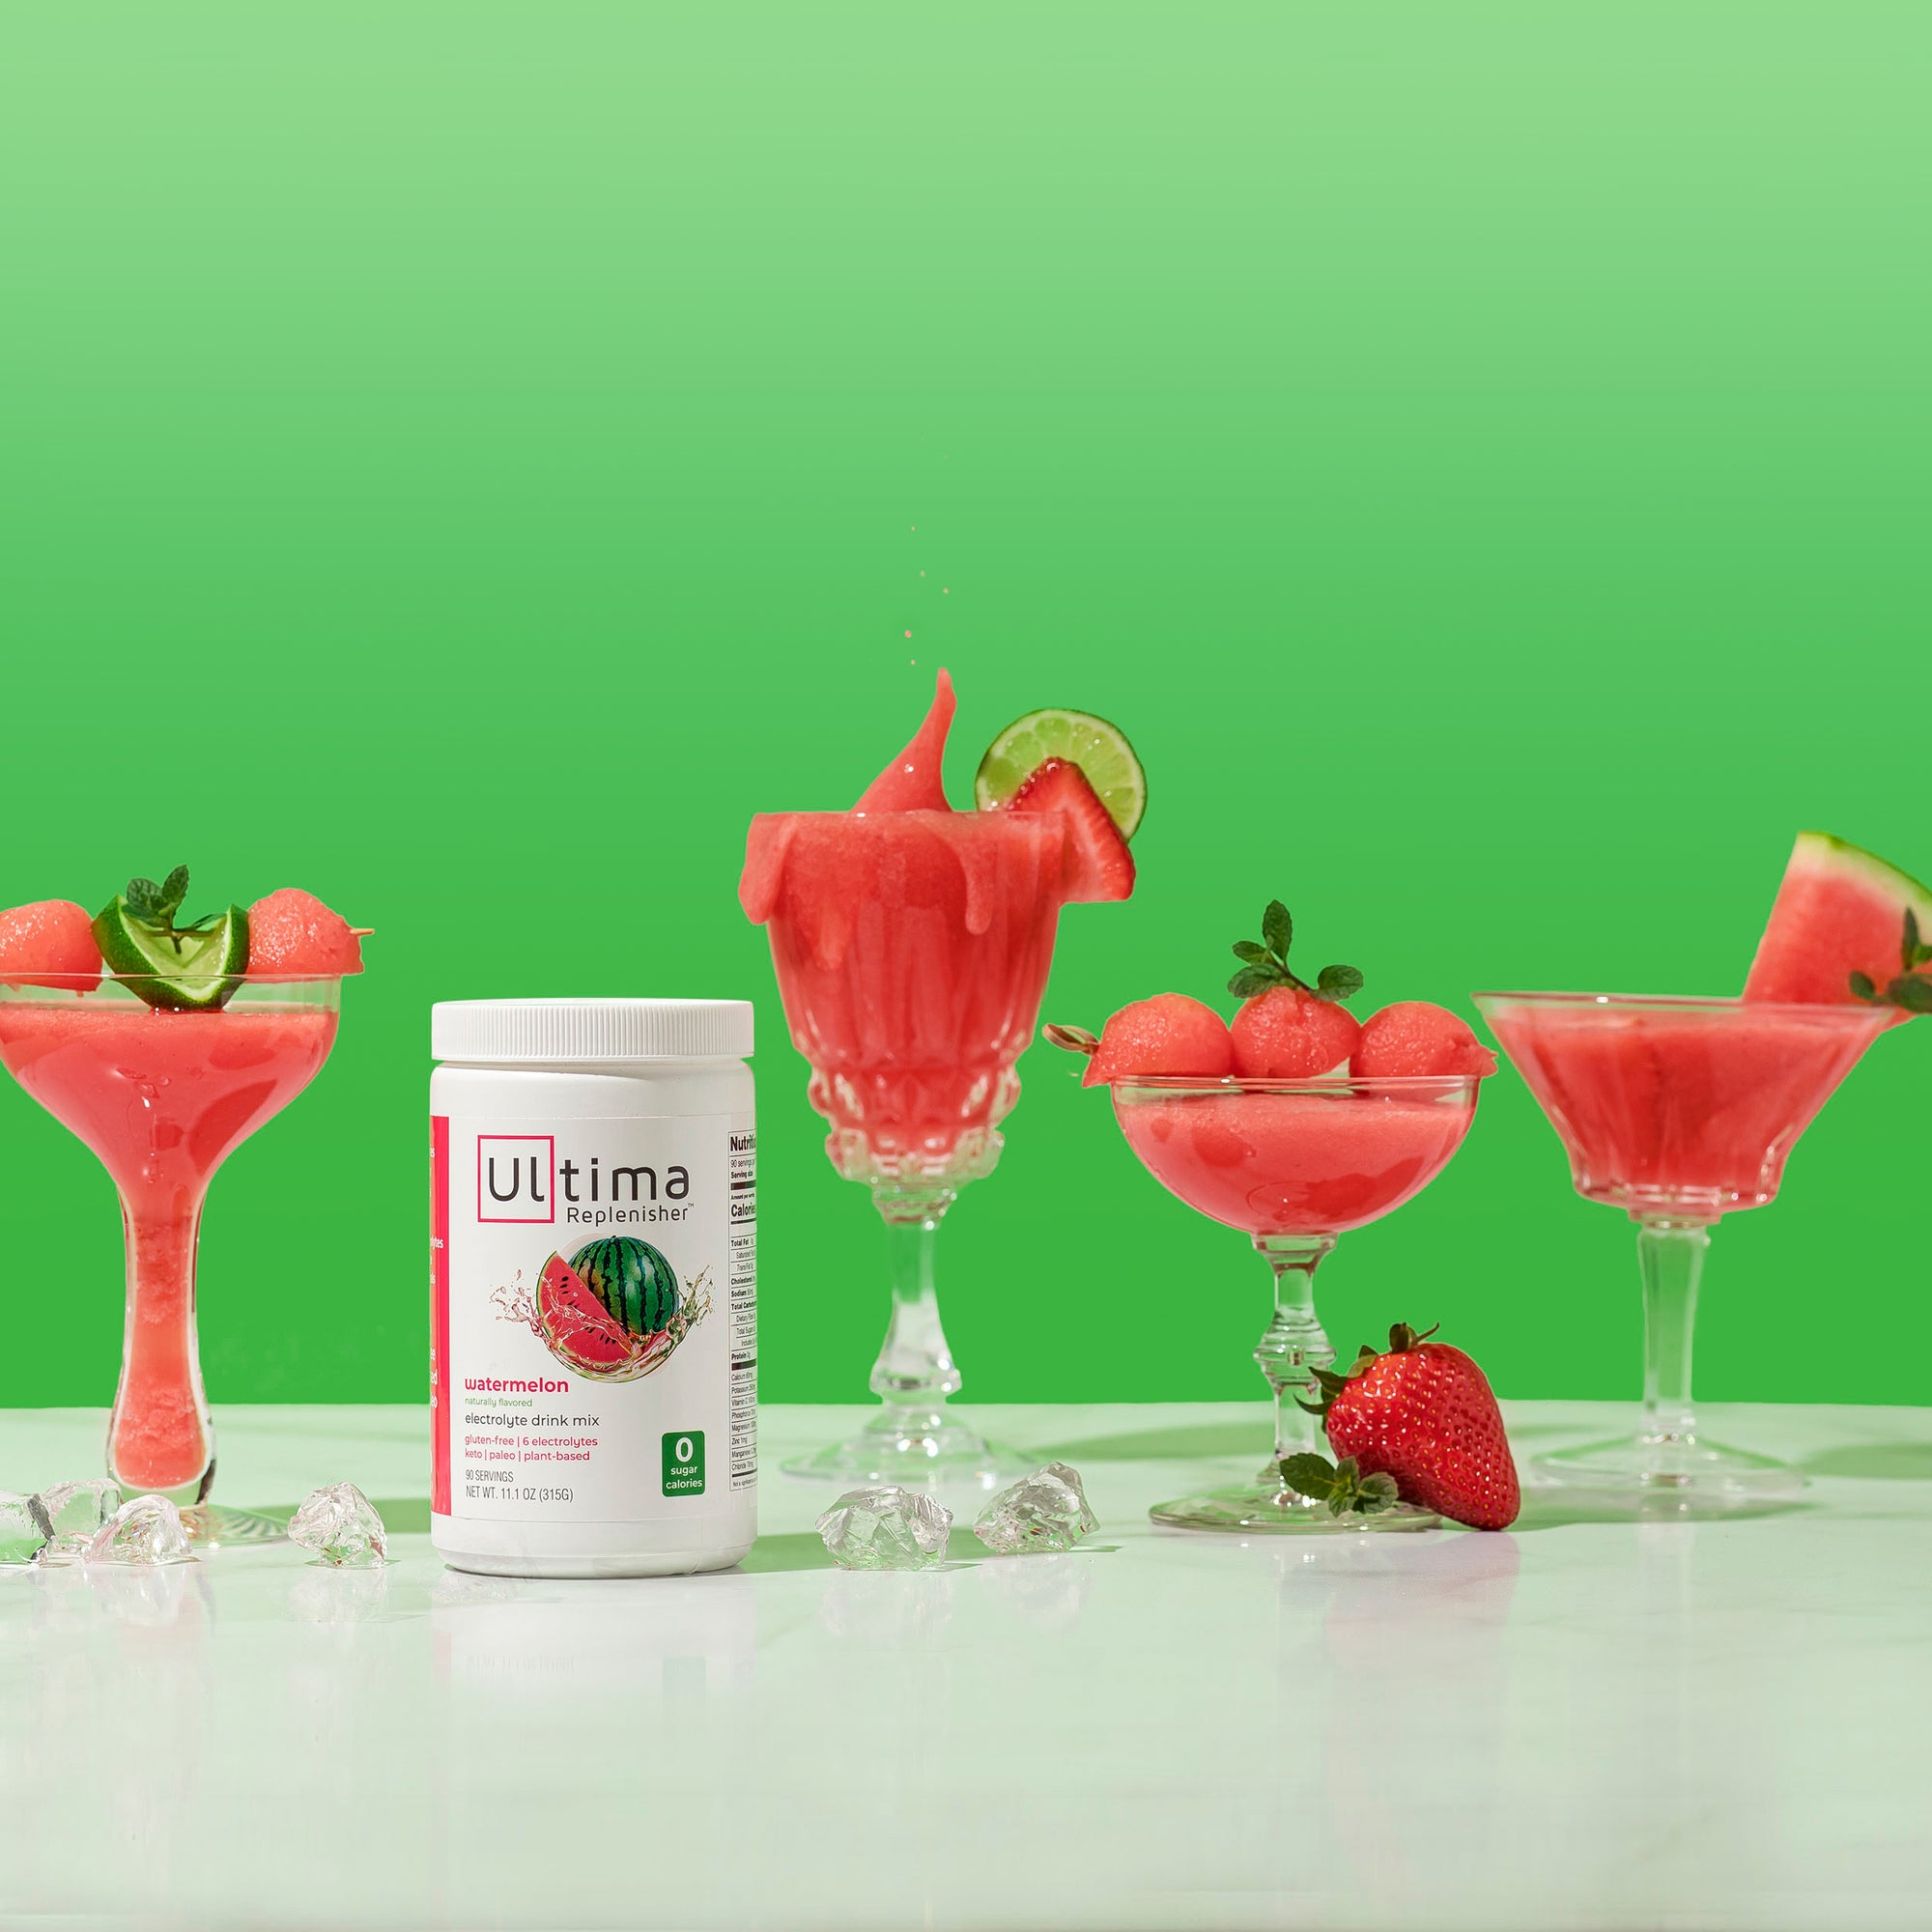 Ultima Watermelon Strawberry Slushy